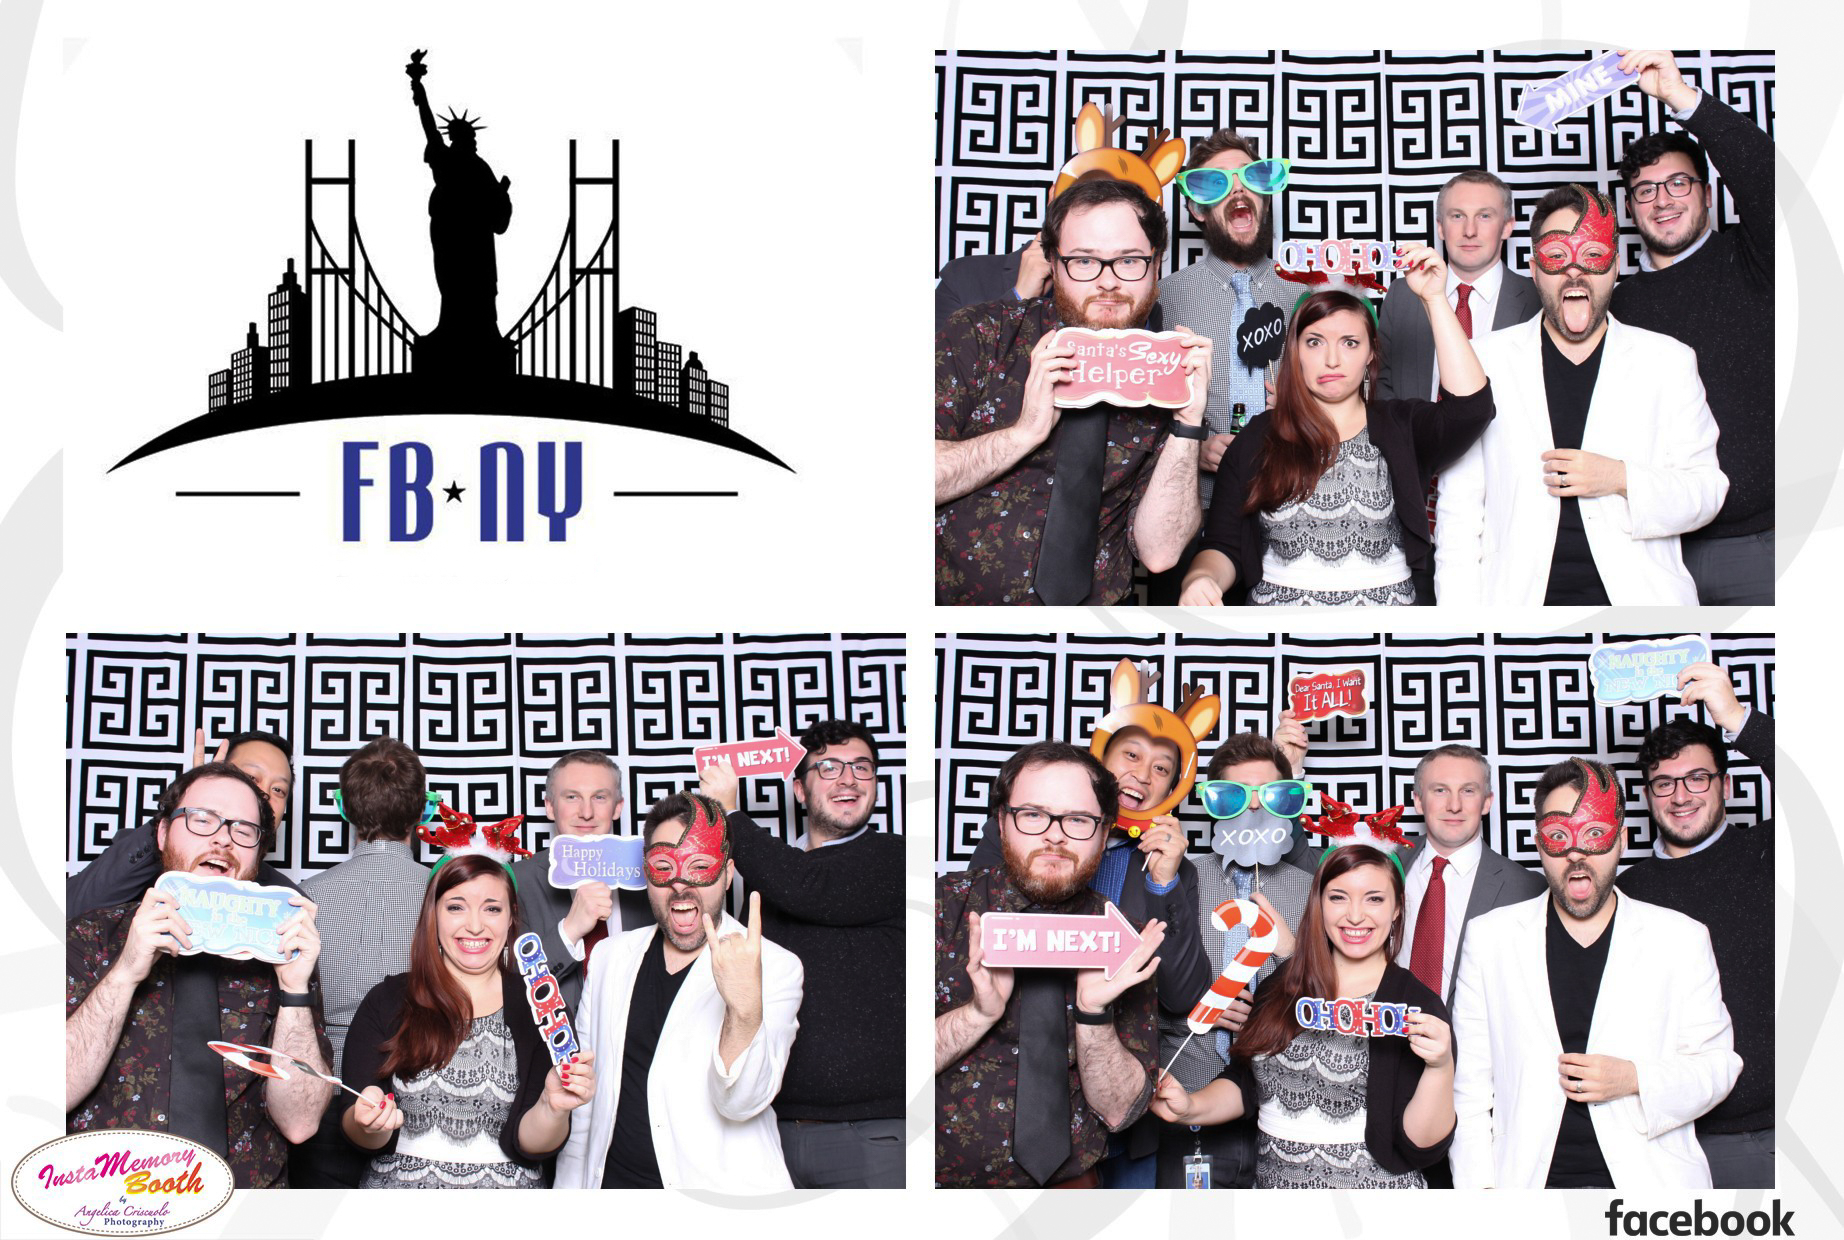 Best New York Photo booth rental w/ Facebook NY Corporate office - Manhattan, Brooklyn, Queens, Staten Island, NJ, Manhattan, CT